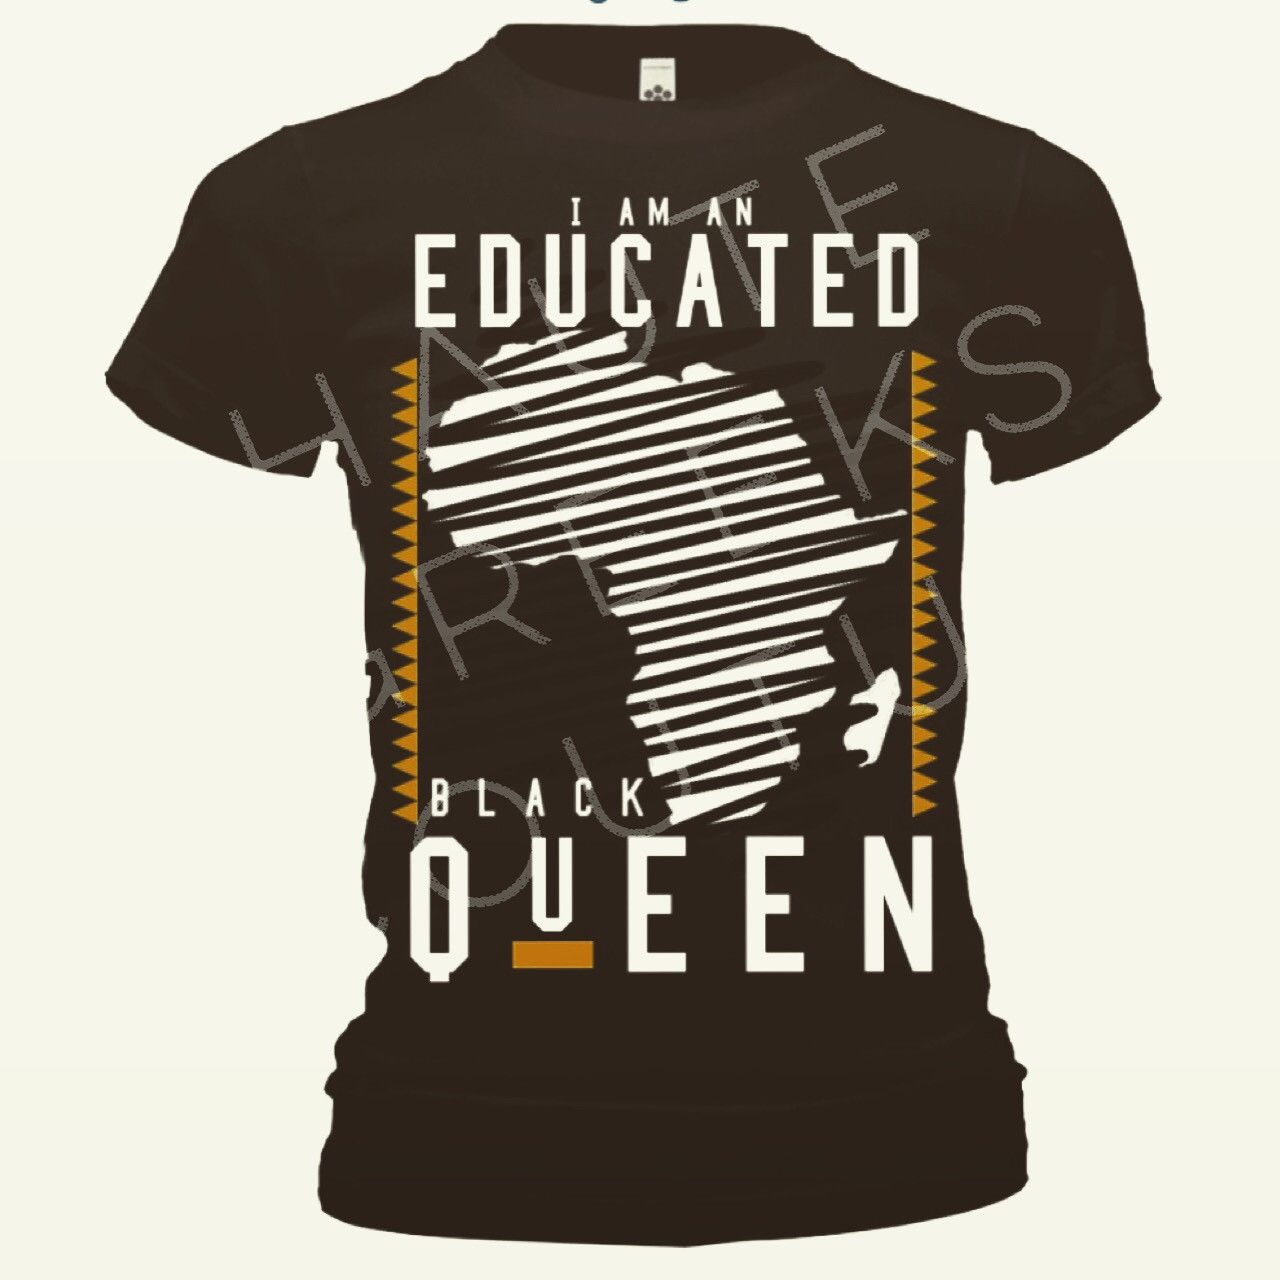 Black queen t shirt - Educated Black Queen Fitted Shirt Blk